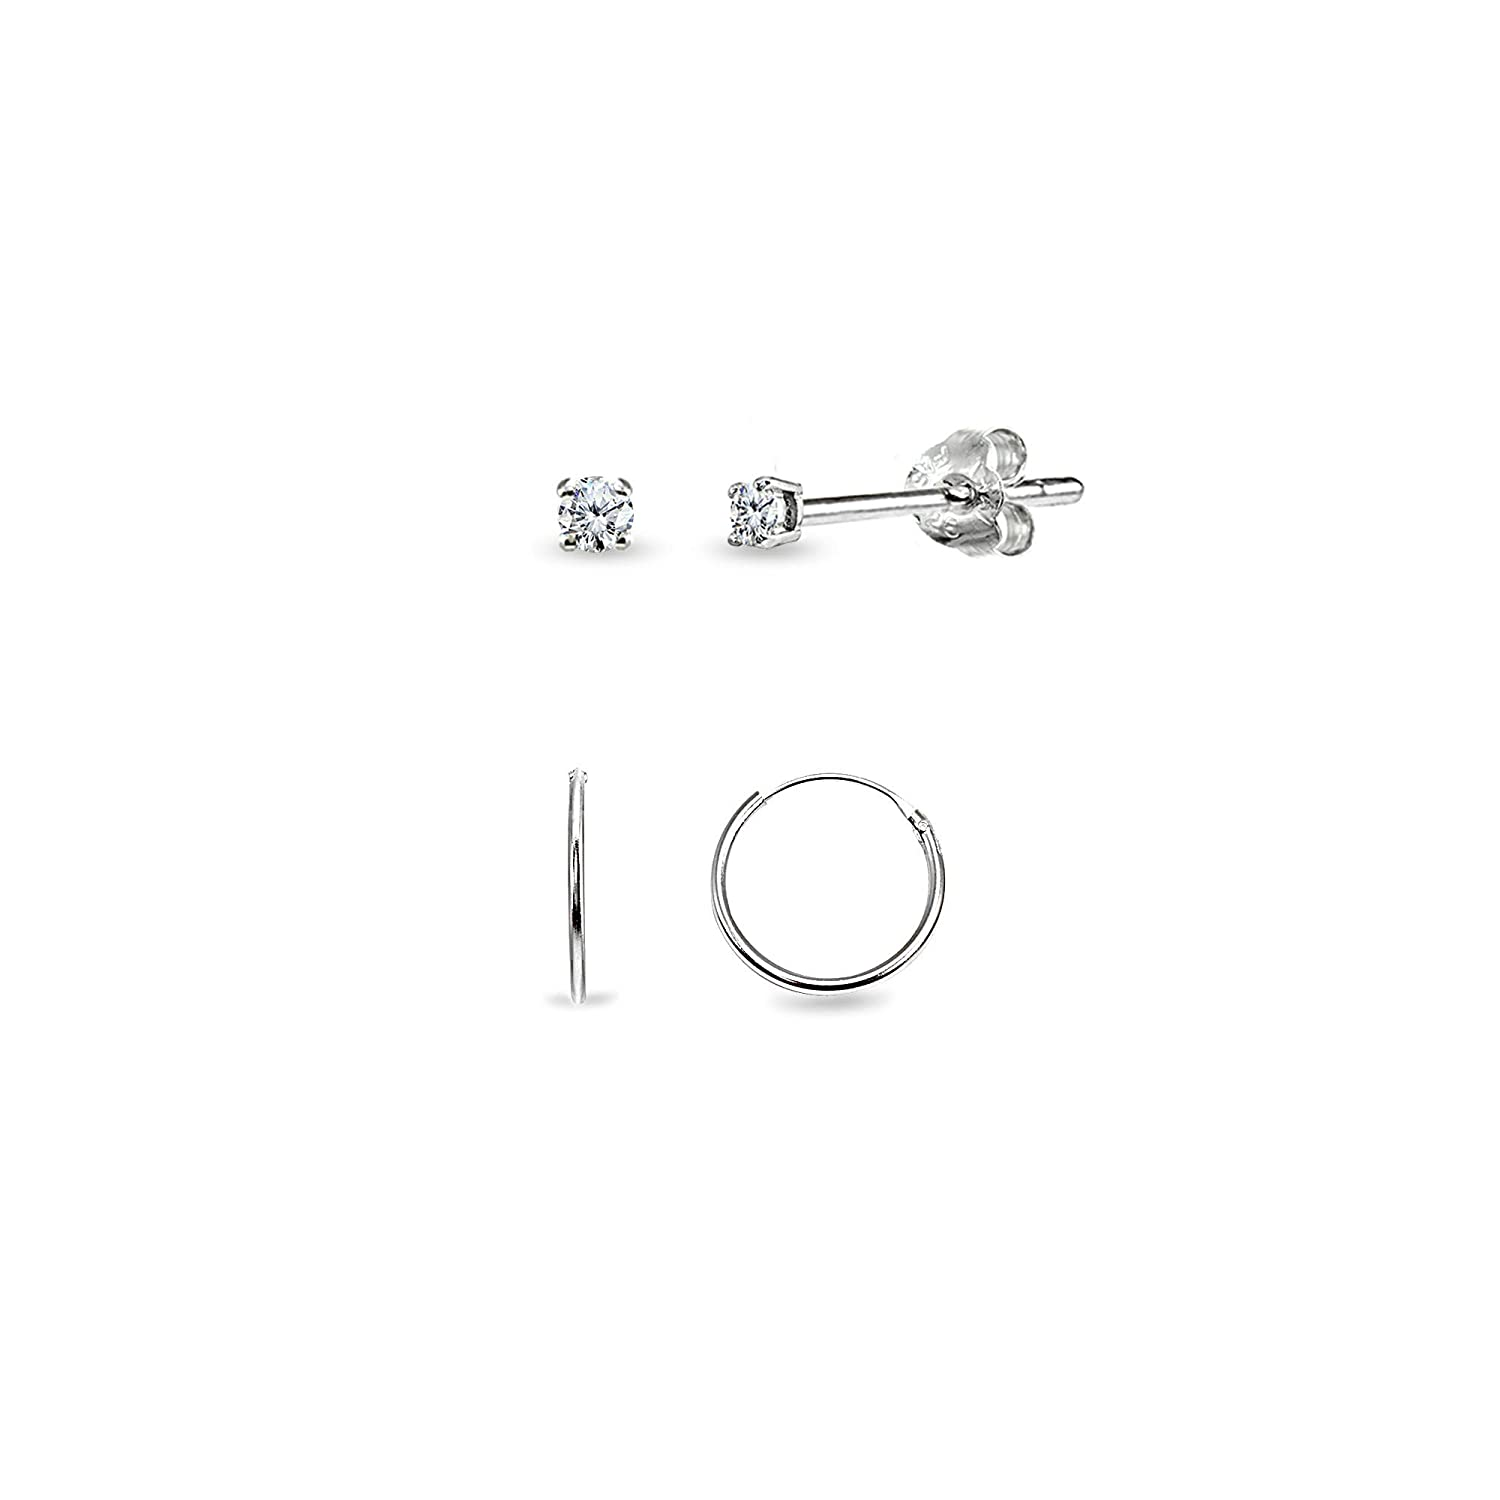 Fashion Silver Plated Stainless Steel 2mm Thin Polished Round Hoop Earrings WR